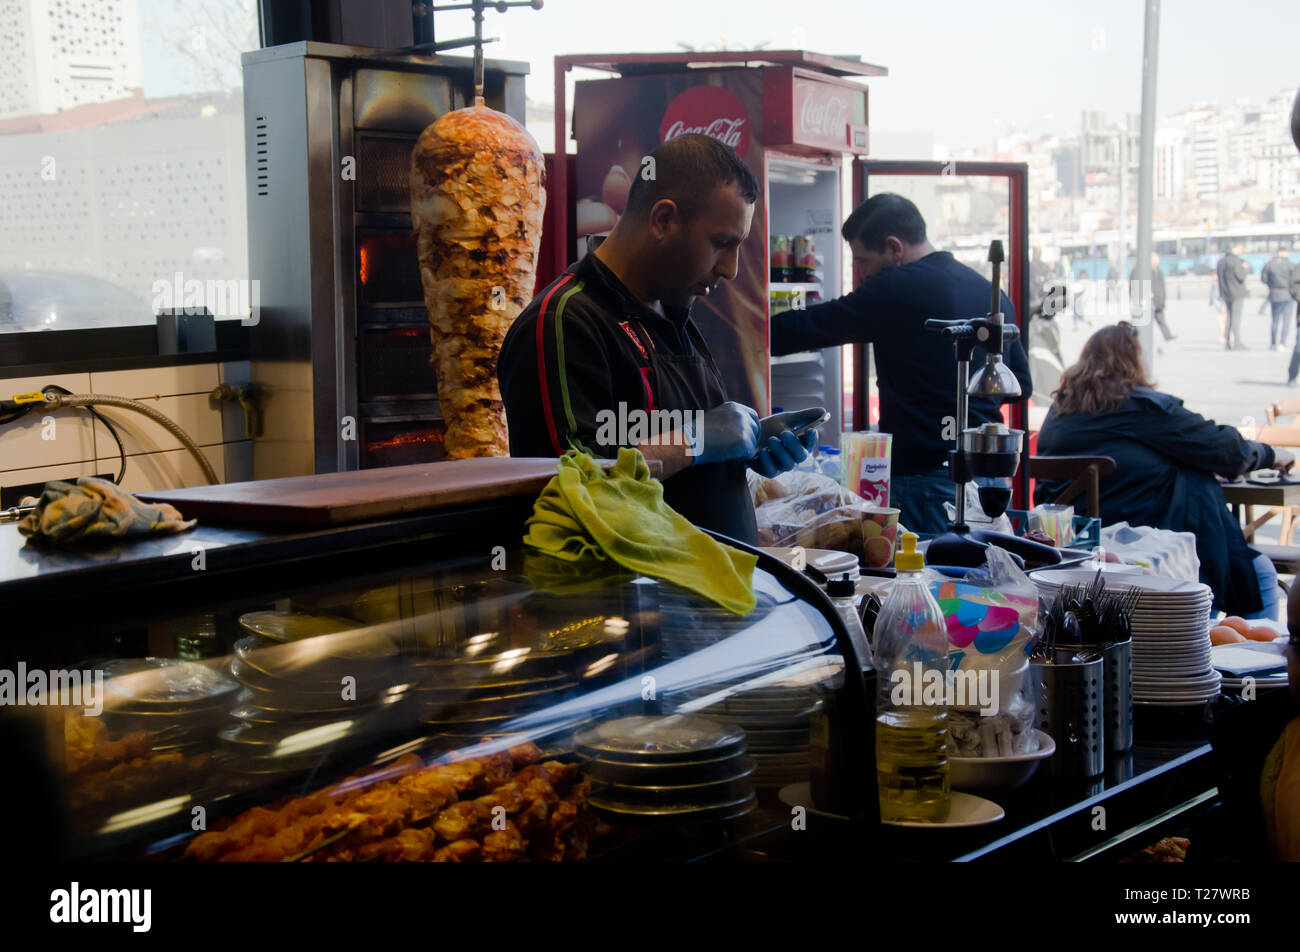 Istanbul,Turkey,March 07,2019:inside of restaurant near Egyptian Bazaar,worker in protective gloves standing at counter looks at the phone - Stock Image